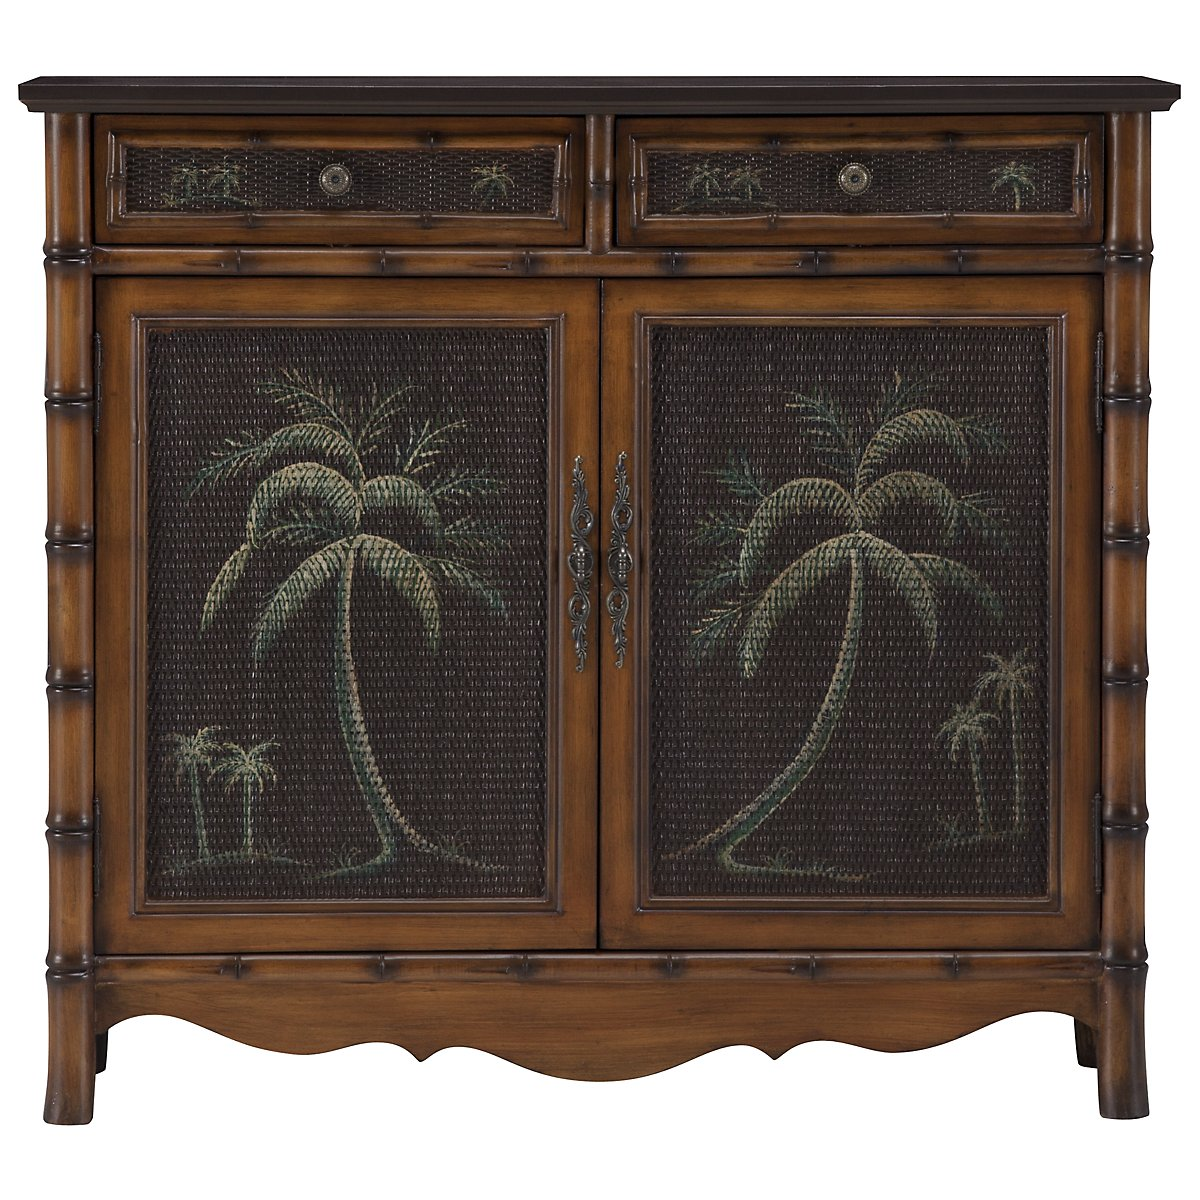 Tropic Two-Tone Accent Chest